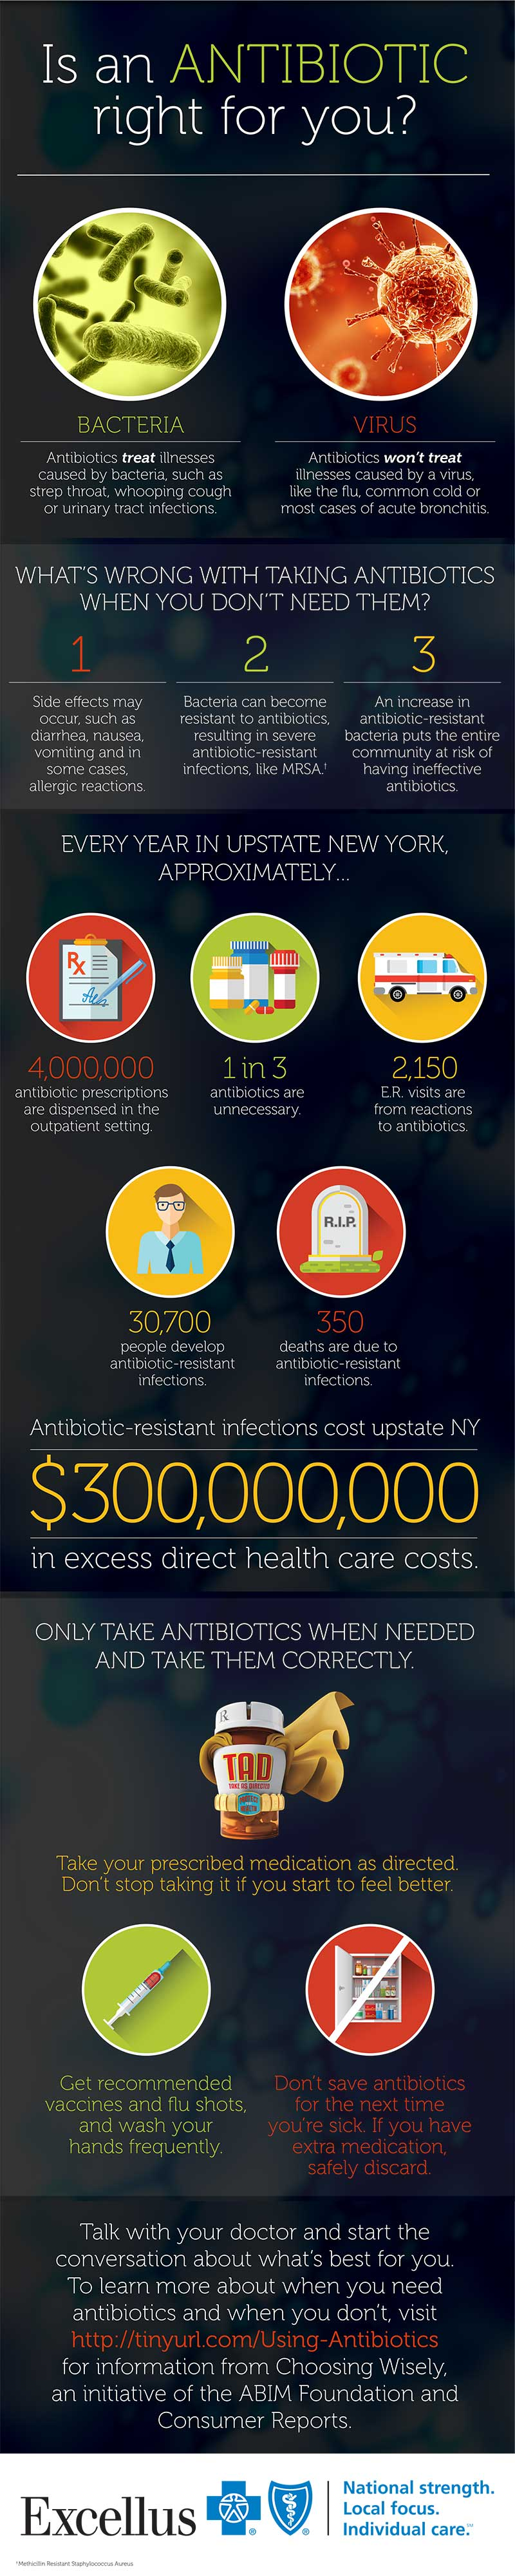 Misuse and abuse of antibiotics is causing the drugs to be ineffective.  Here are details